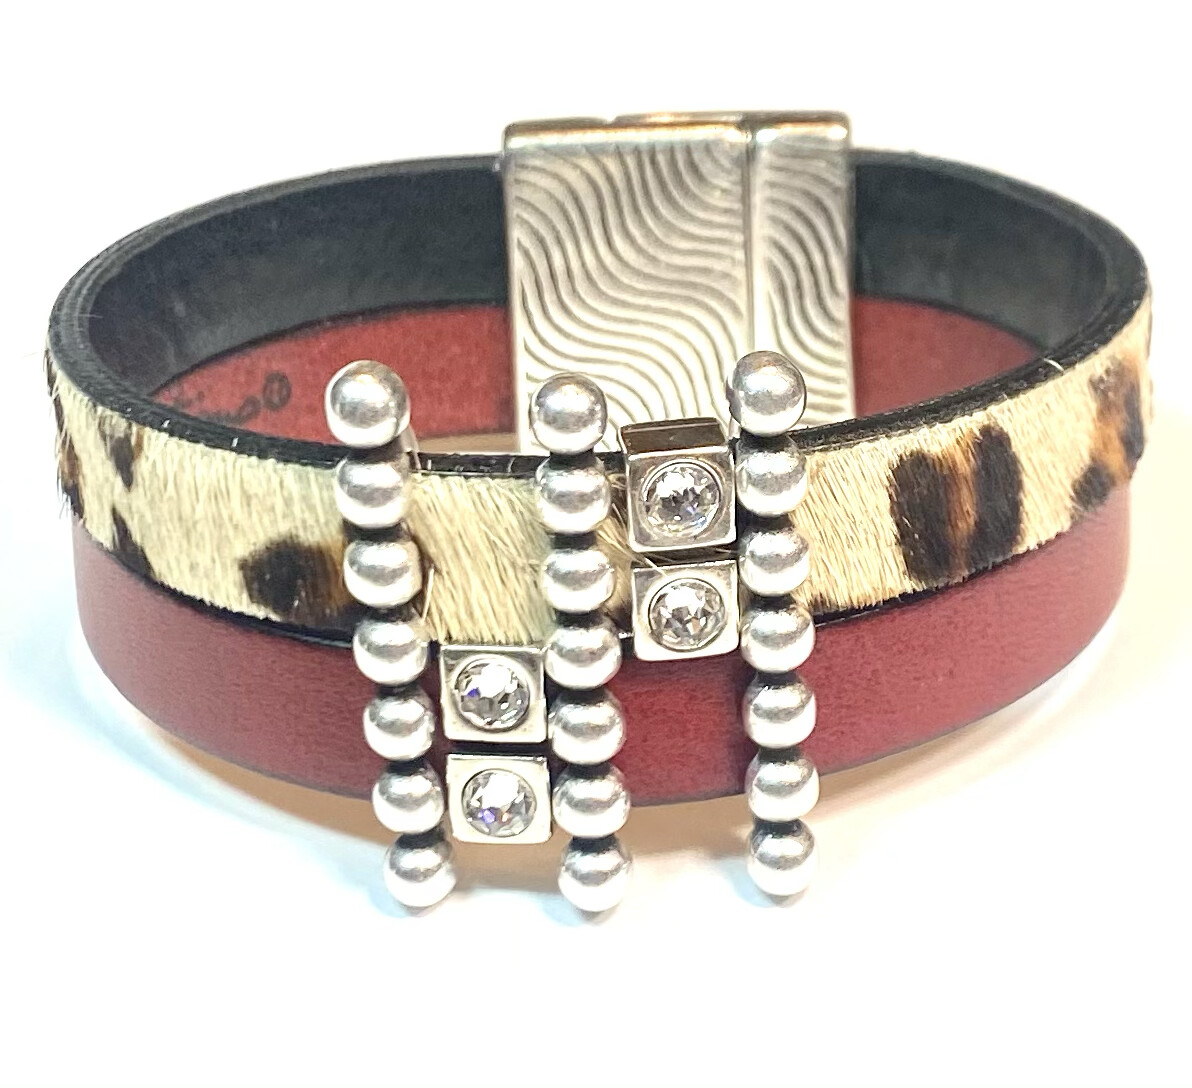 Bracelet|  Women's Two Toned Cuff Red And Leopard Print Wrap Leather With Silver Bling Accents Classy Creations Original